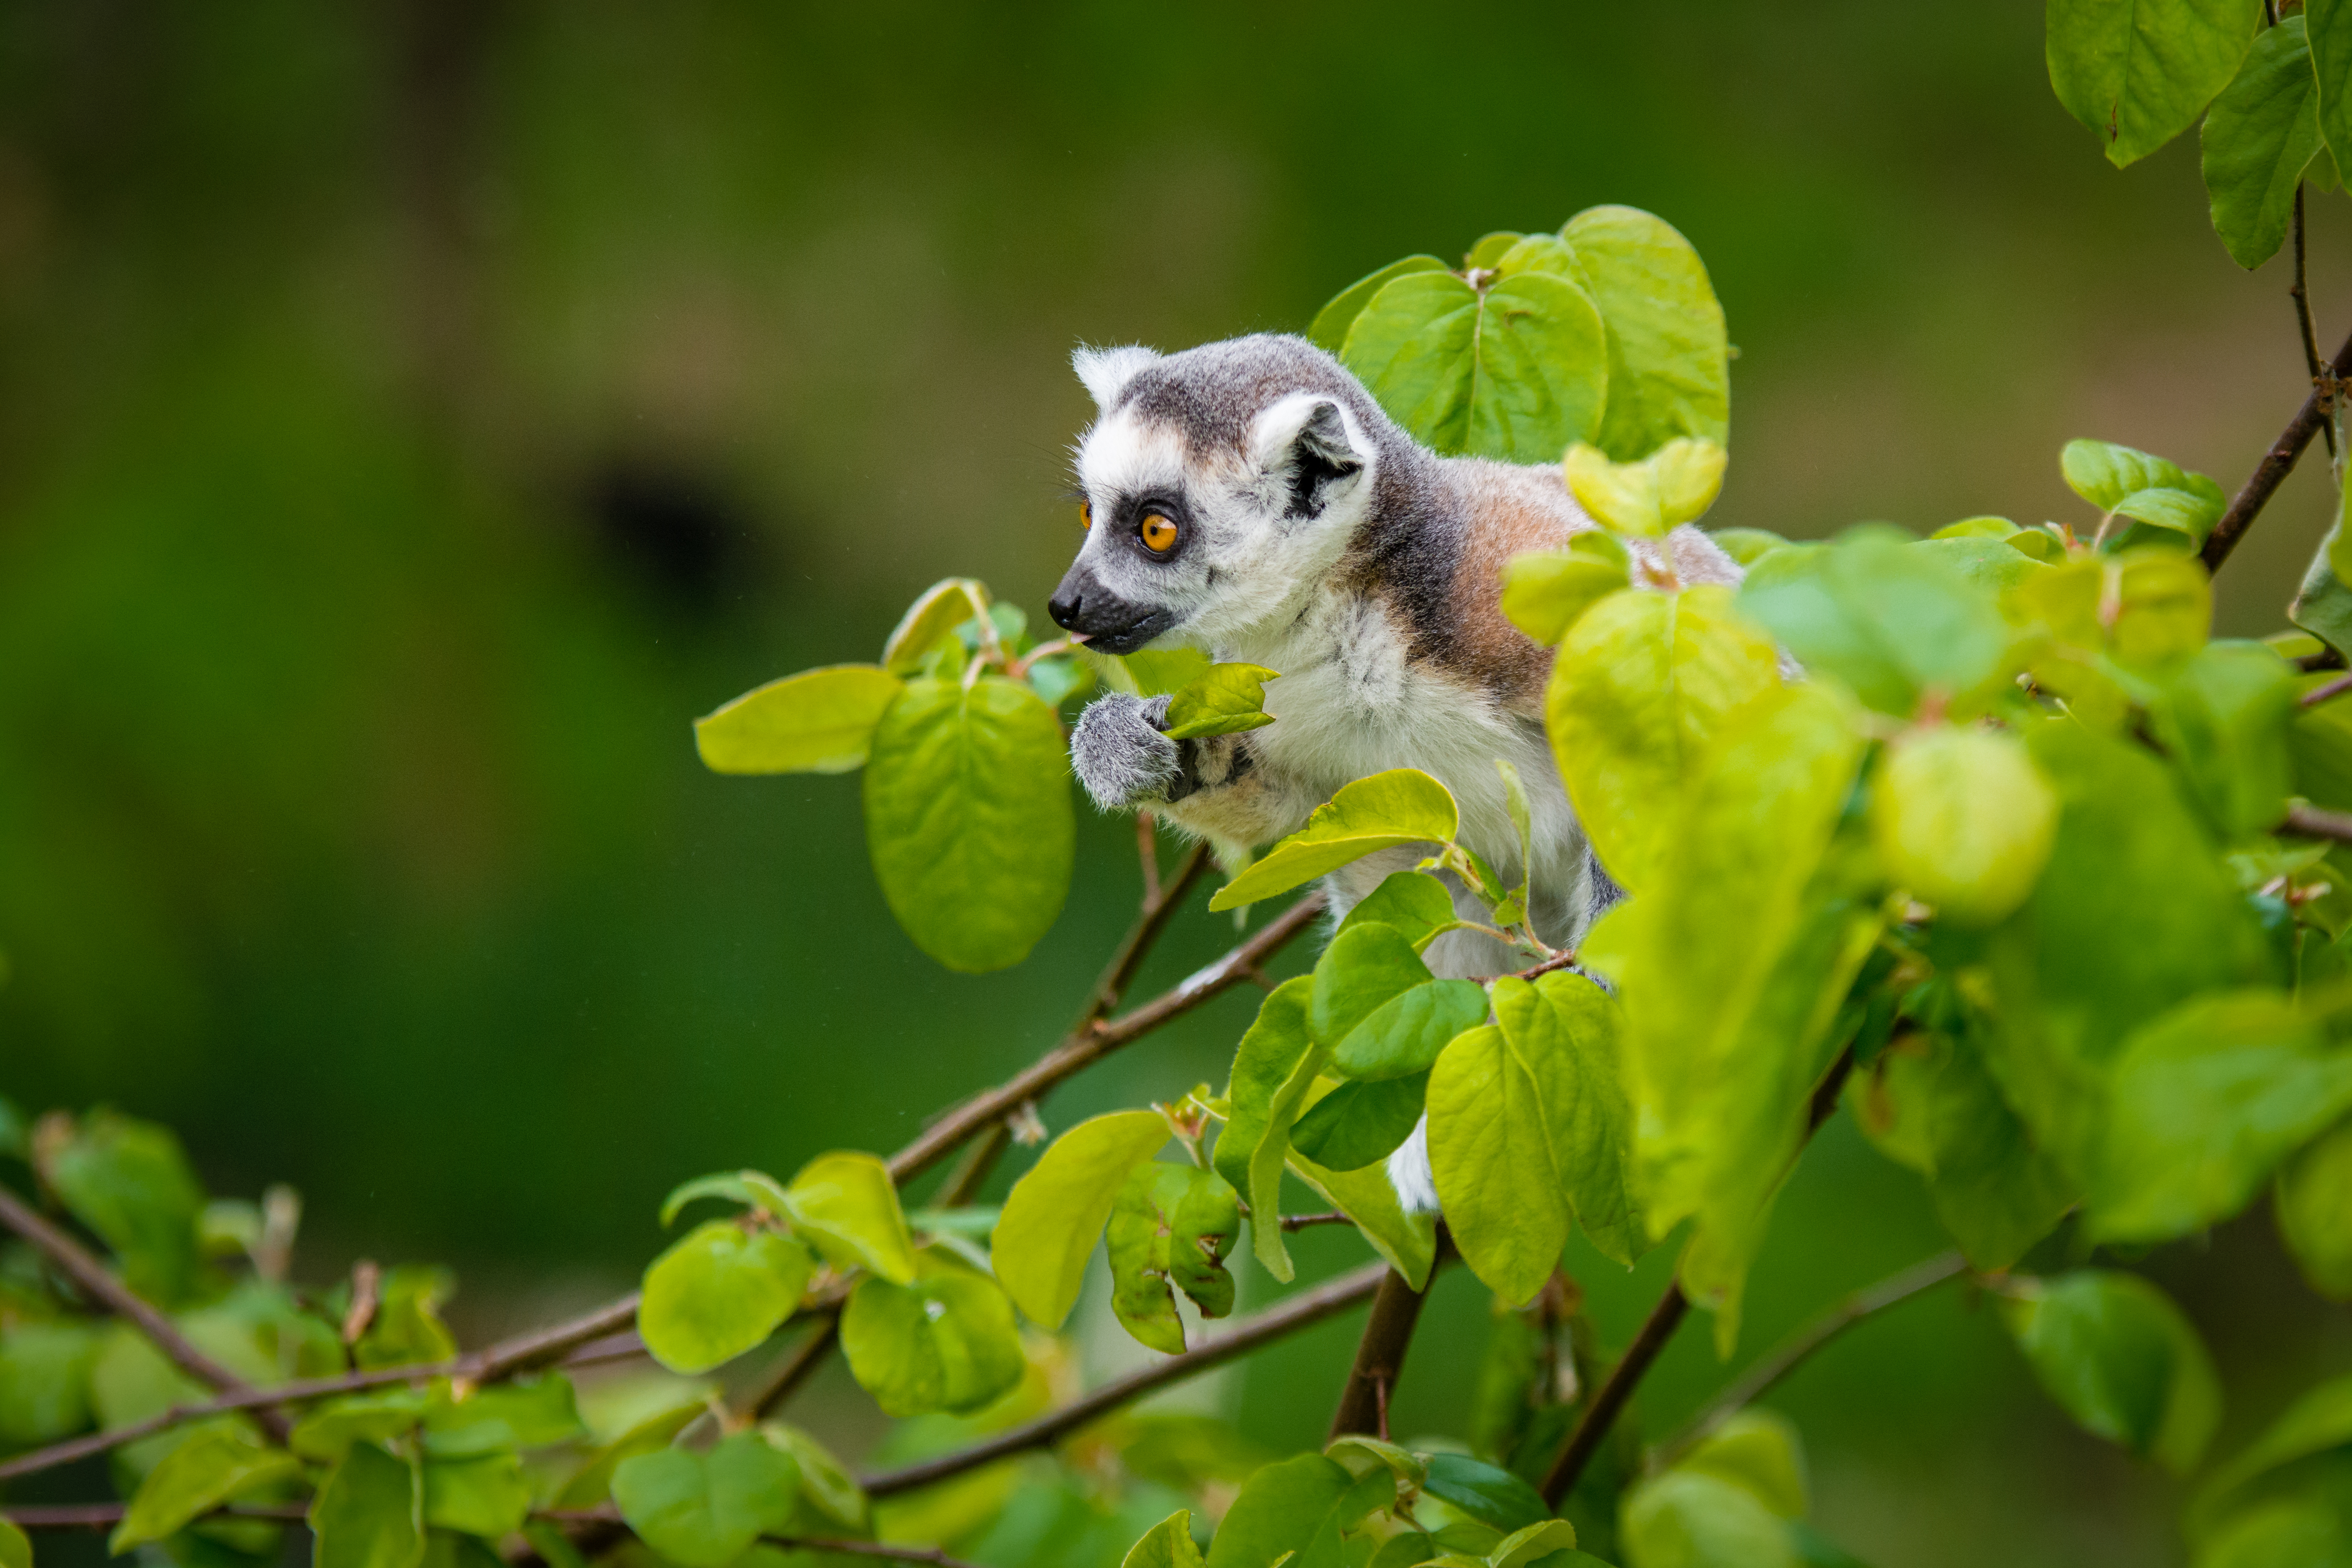 58166 download wallpaper Animals, Lemur, Branches, Is Sitting, Sits, Curious screensavers and pictures for free